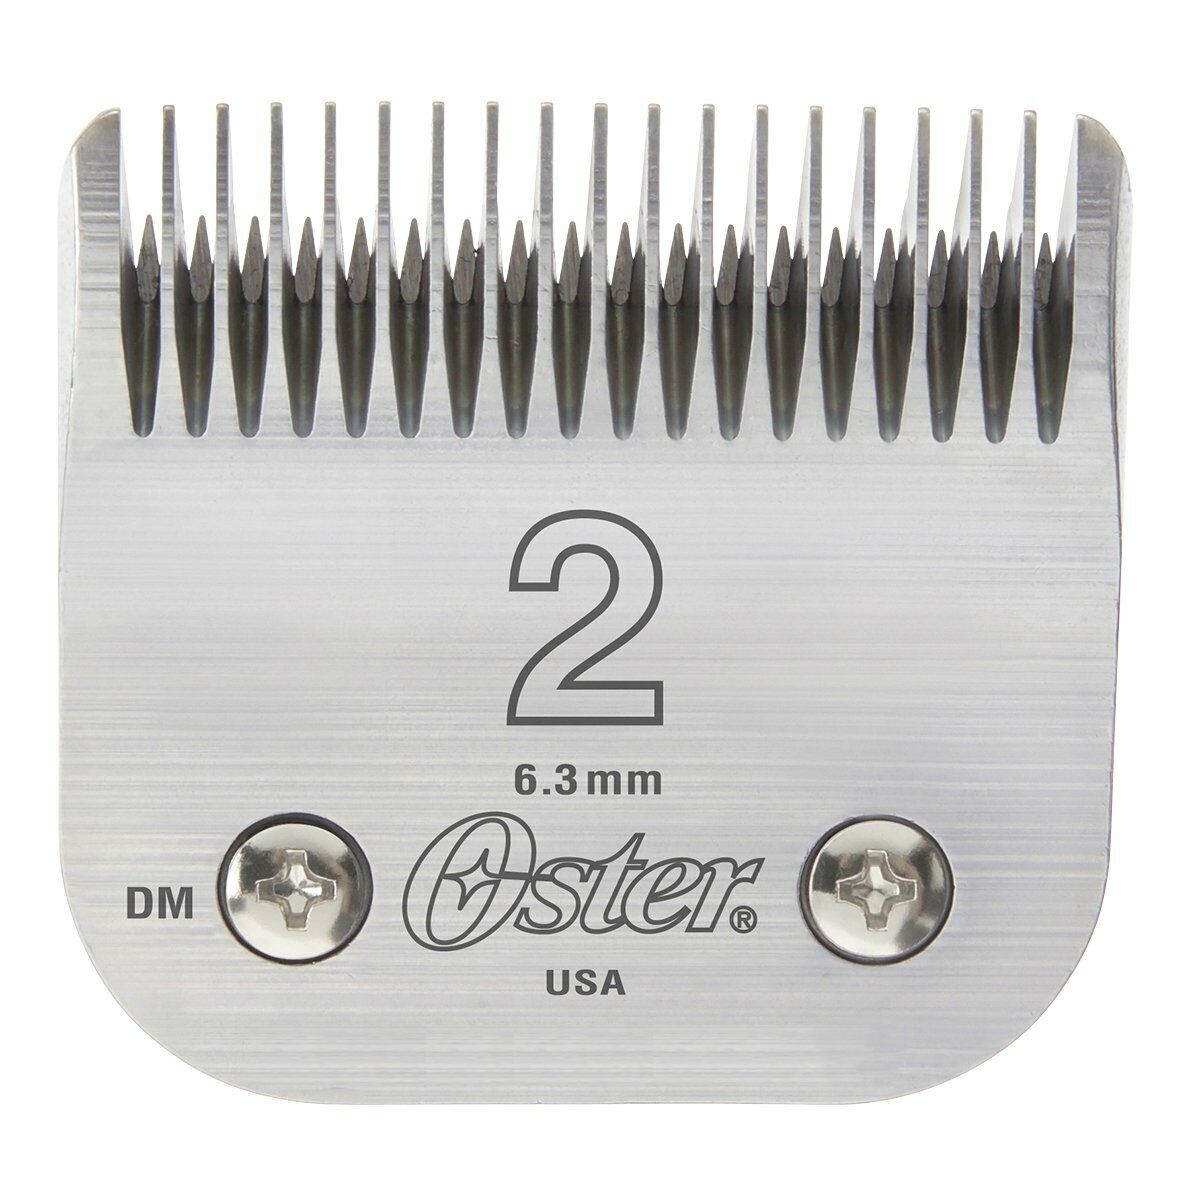 Oster Detachable Blade 2 Fits Classic 76, Octane, Model One,